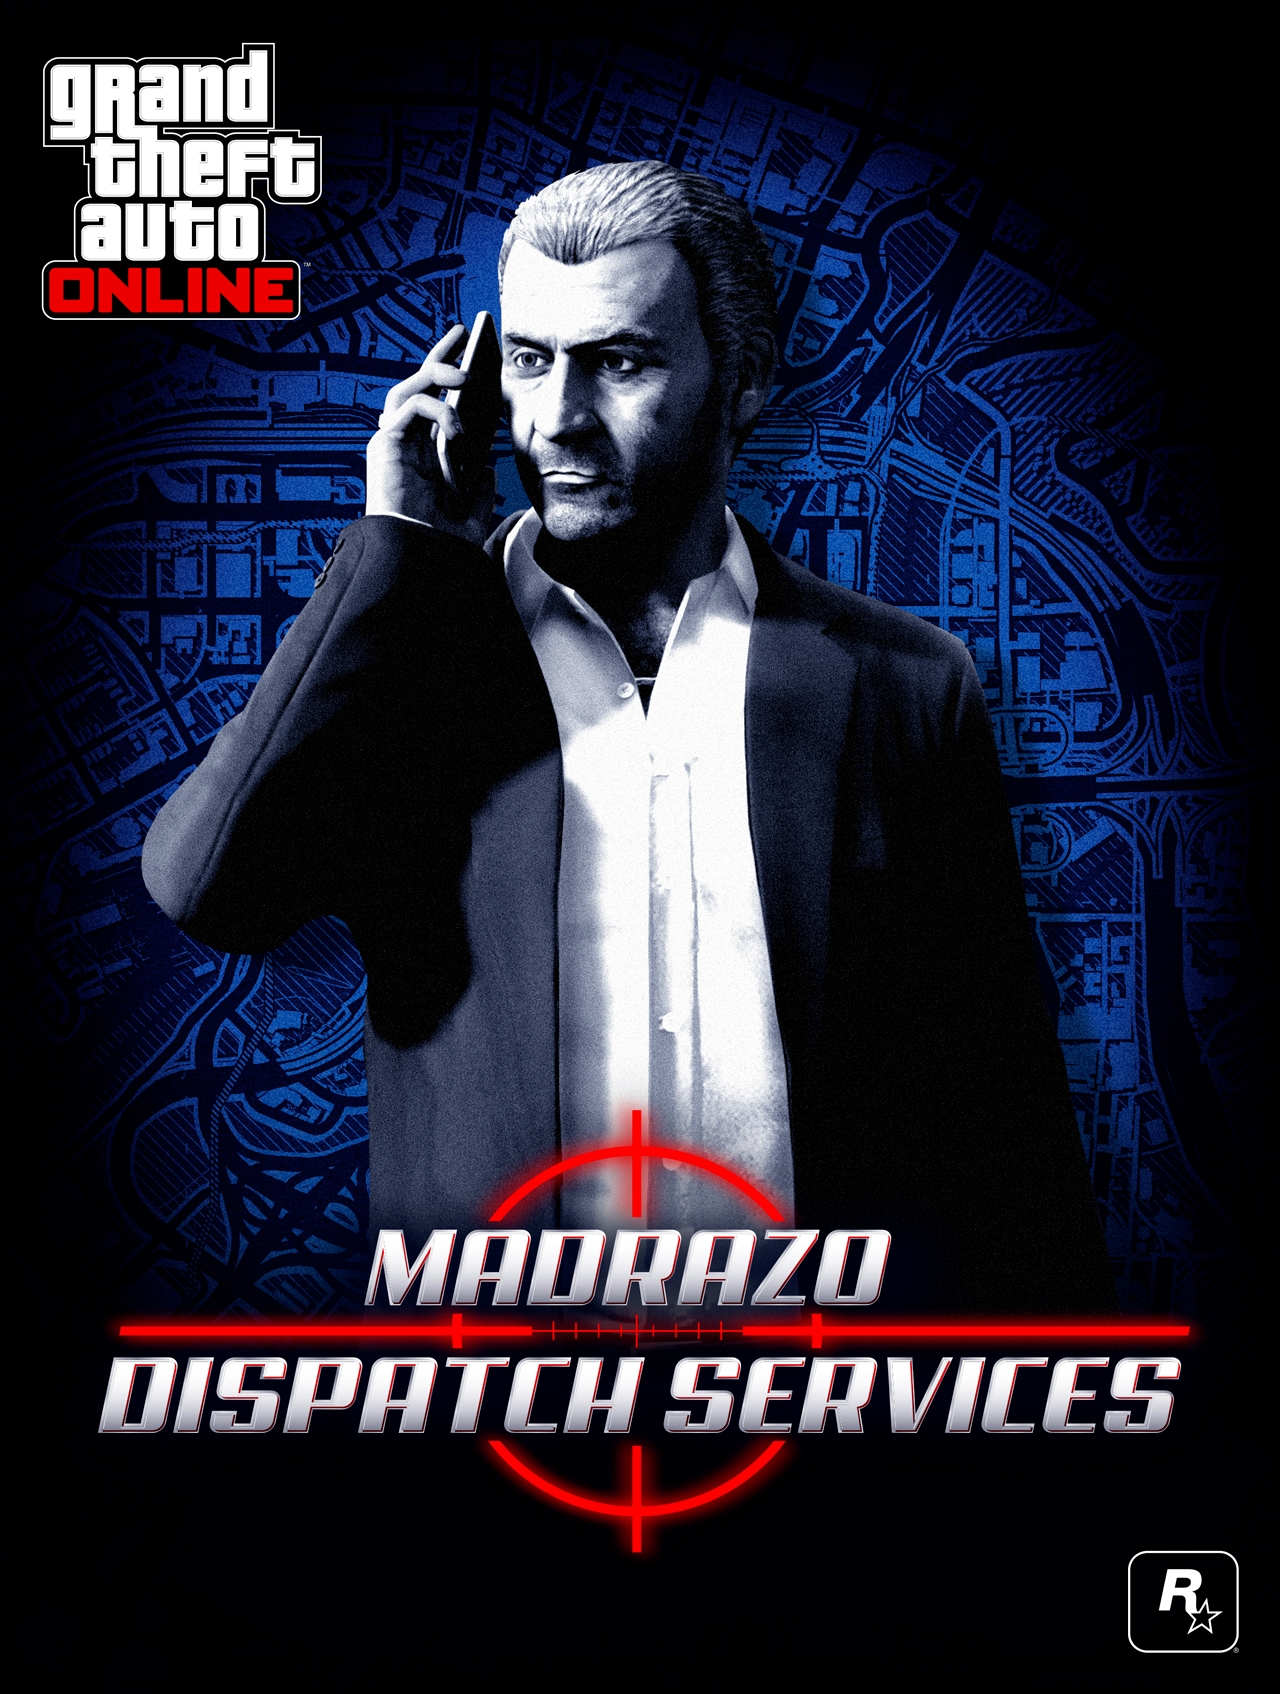 GTA Online: All-New Madrazo Dispatch Services, Michelli GT & Cheburek Out Now